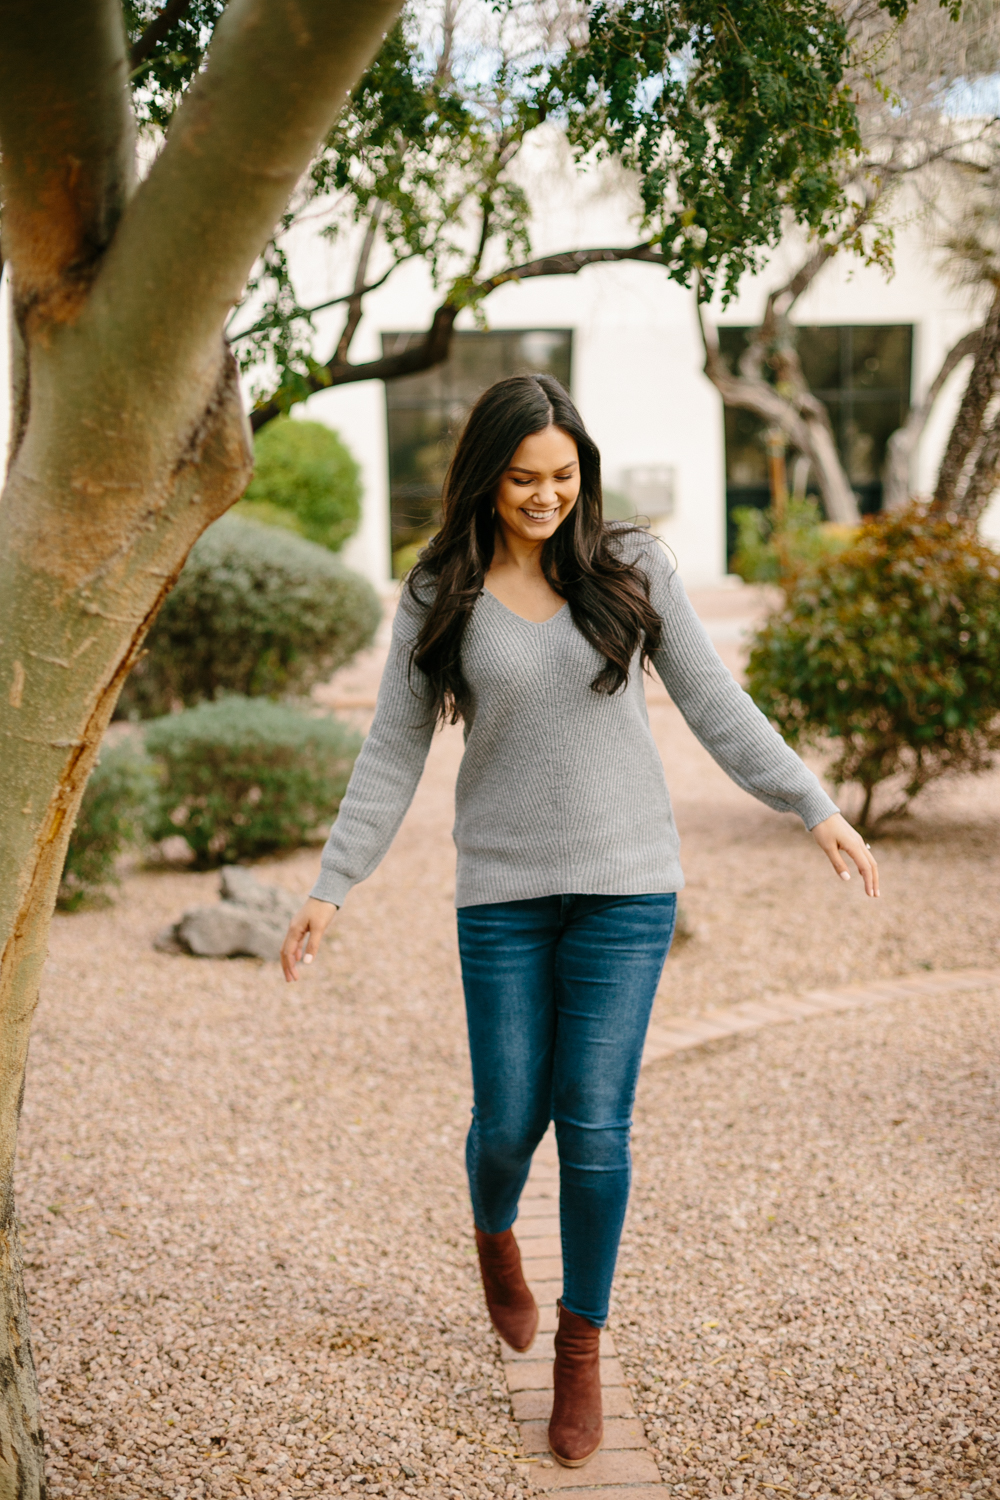 Smile-Filled Old Town Scottsdale, Arizona Engagement Session